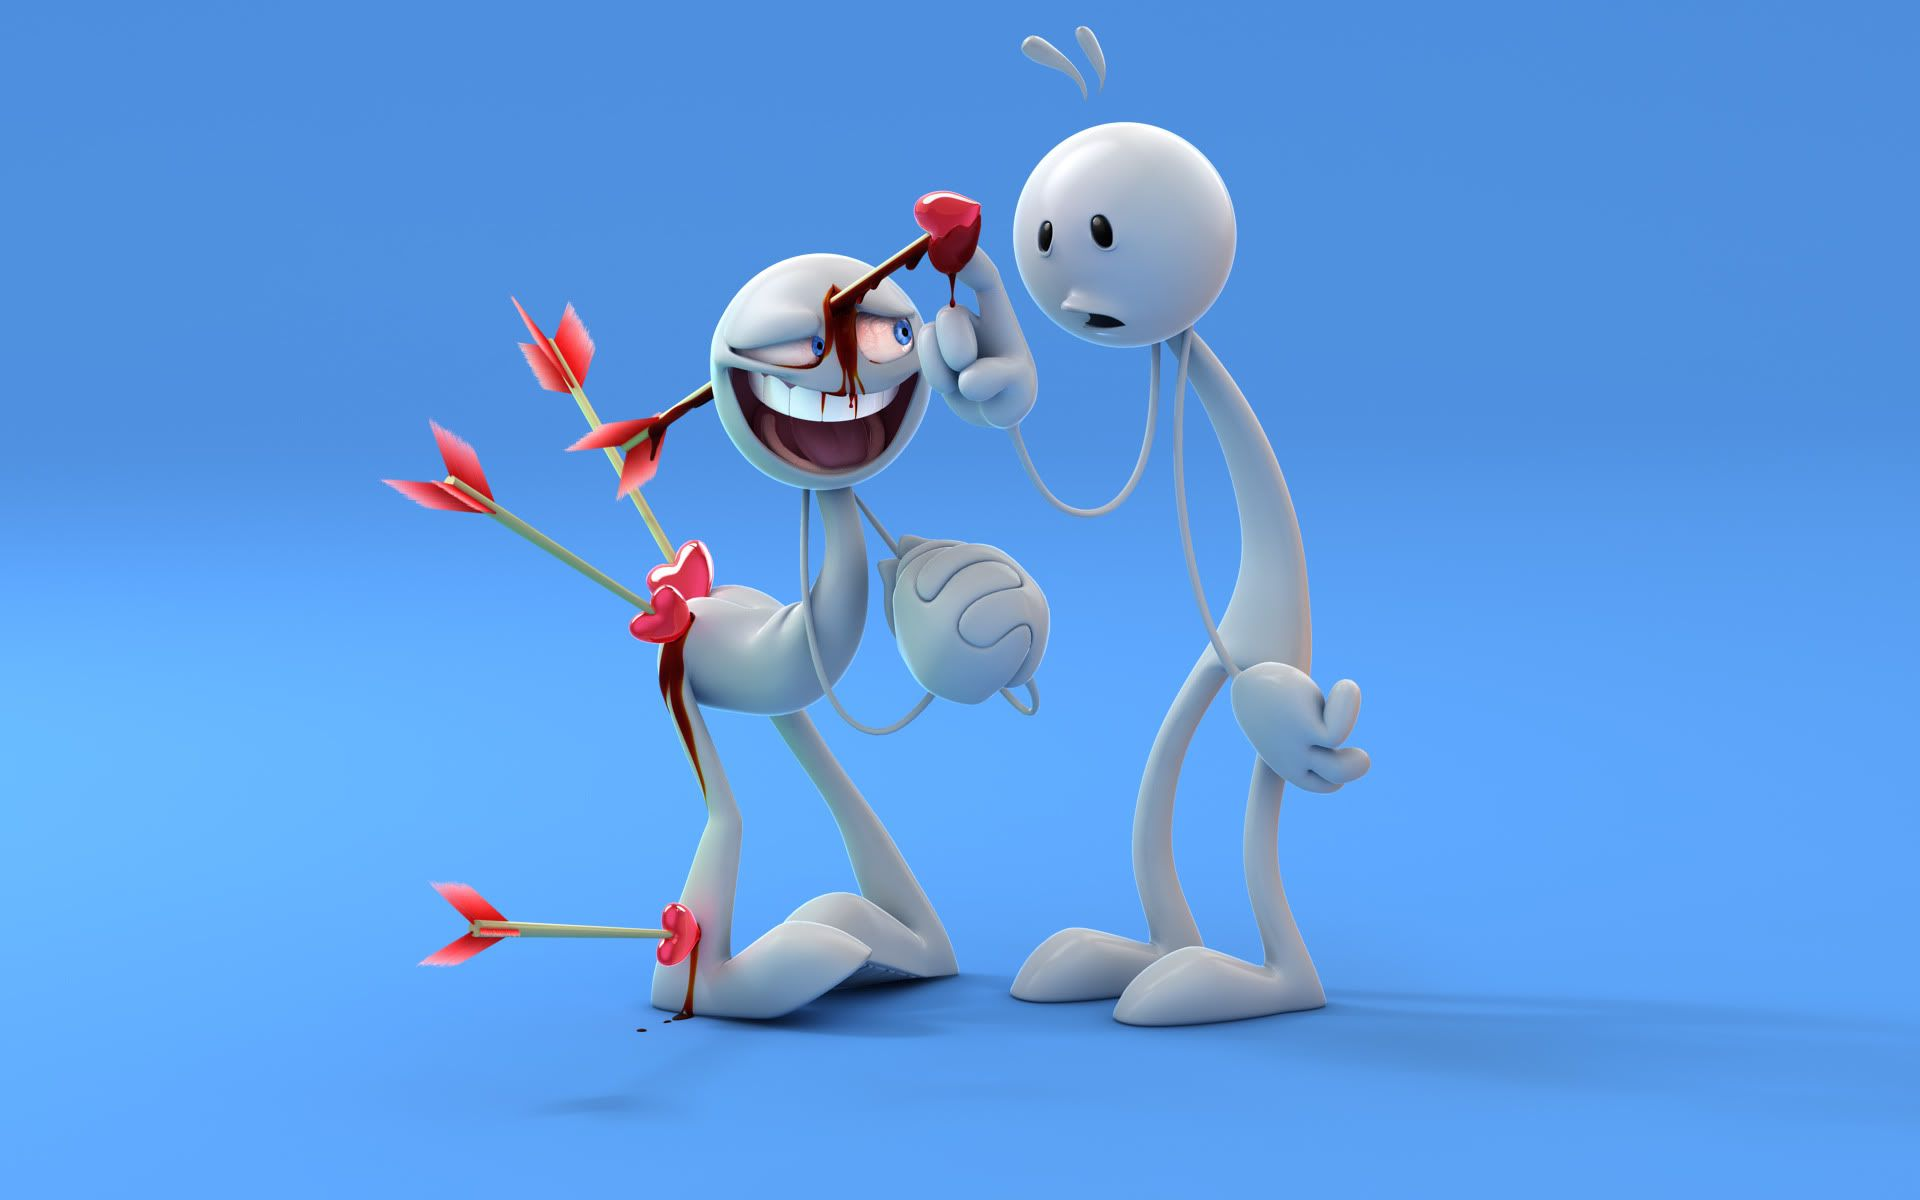 3d Wallpapers Of Funny Robots In Love